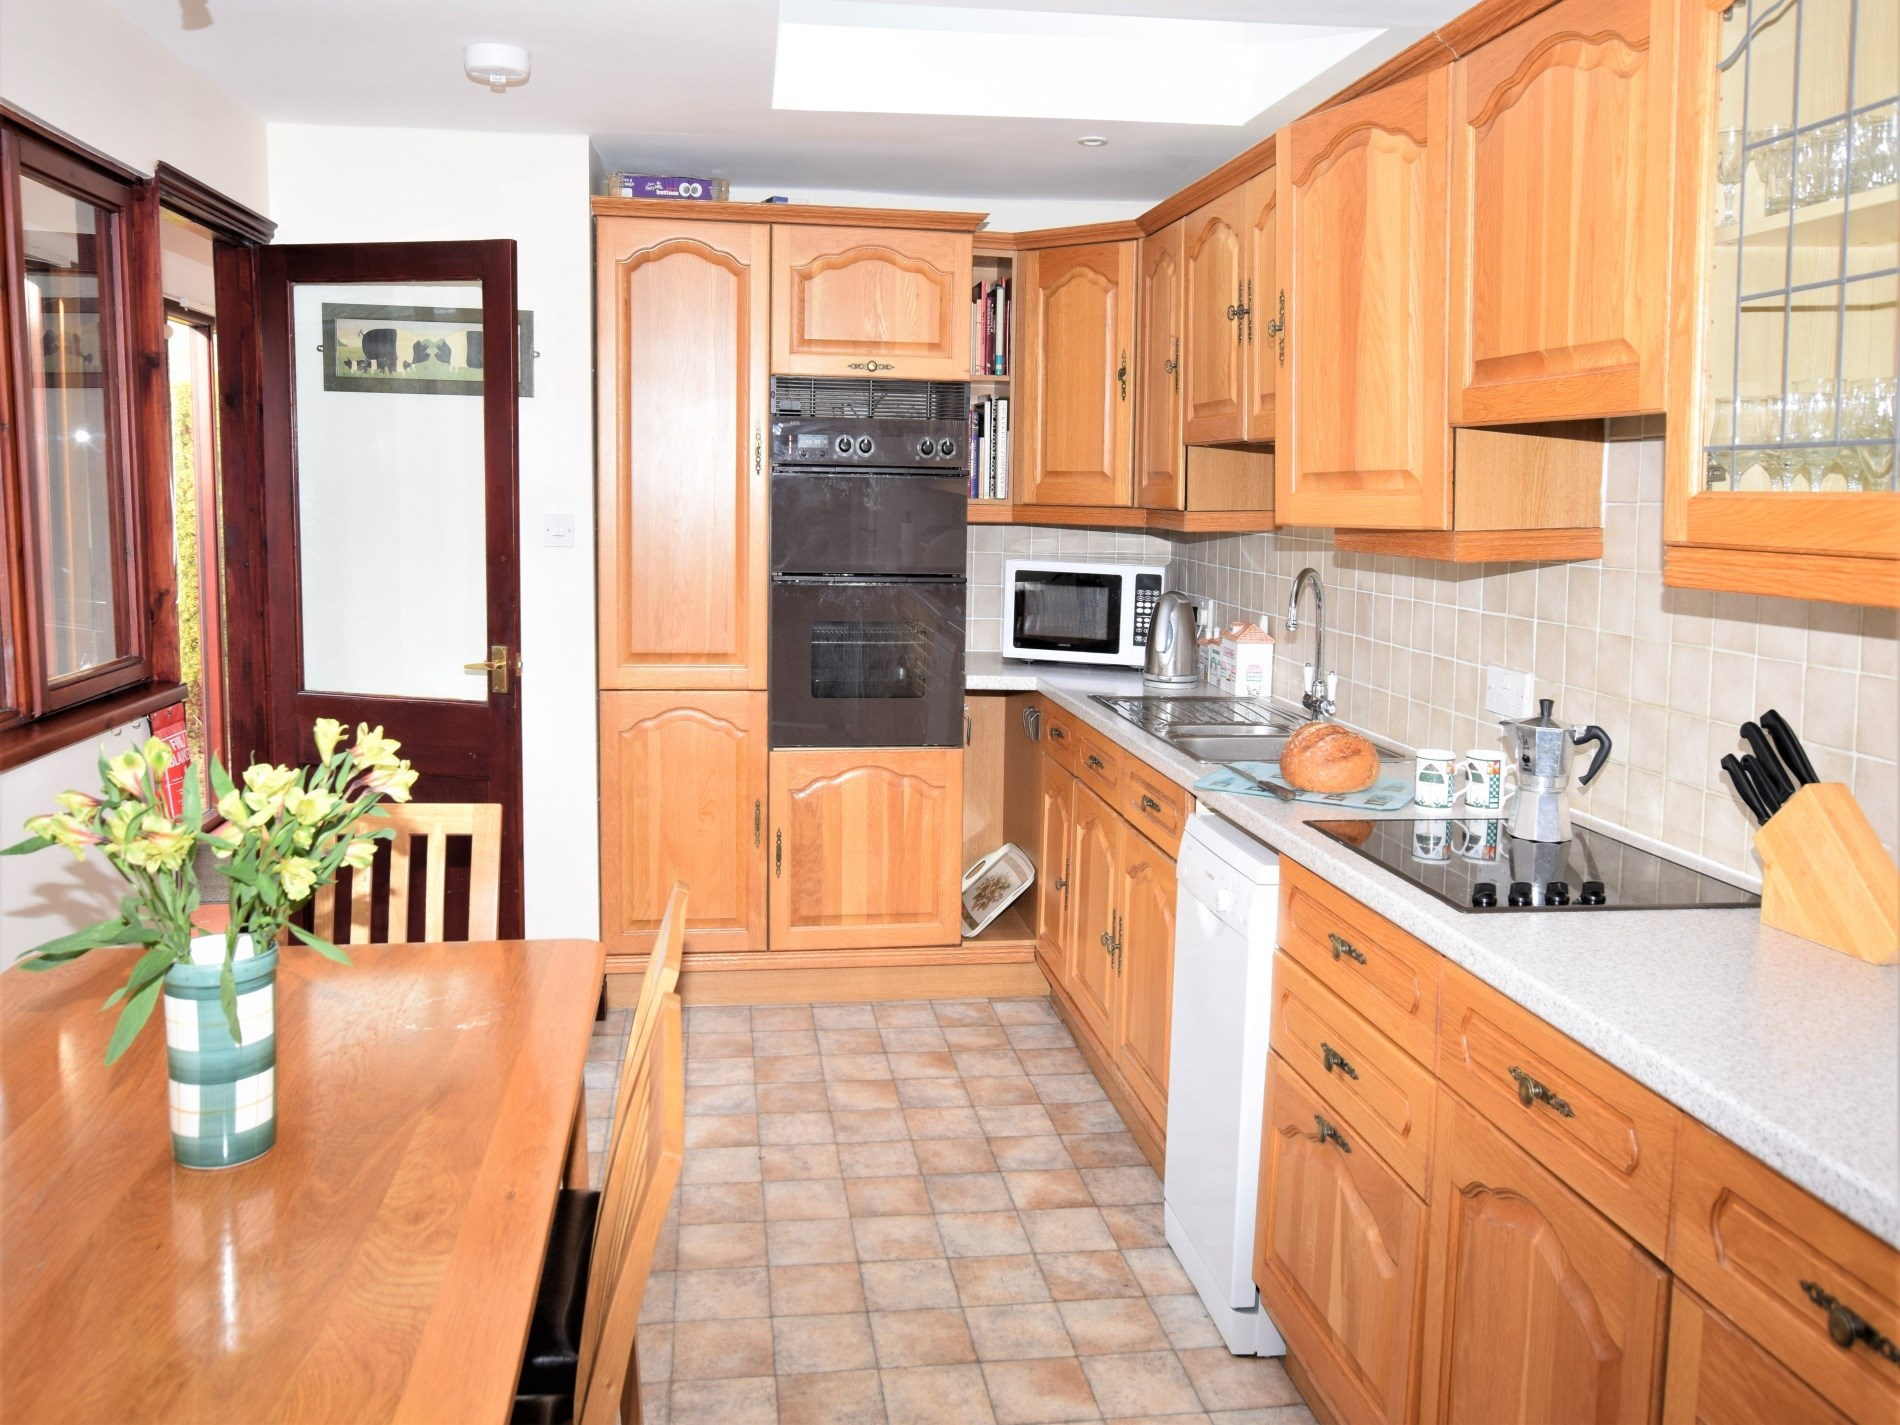 Plenty of space for keen cooks